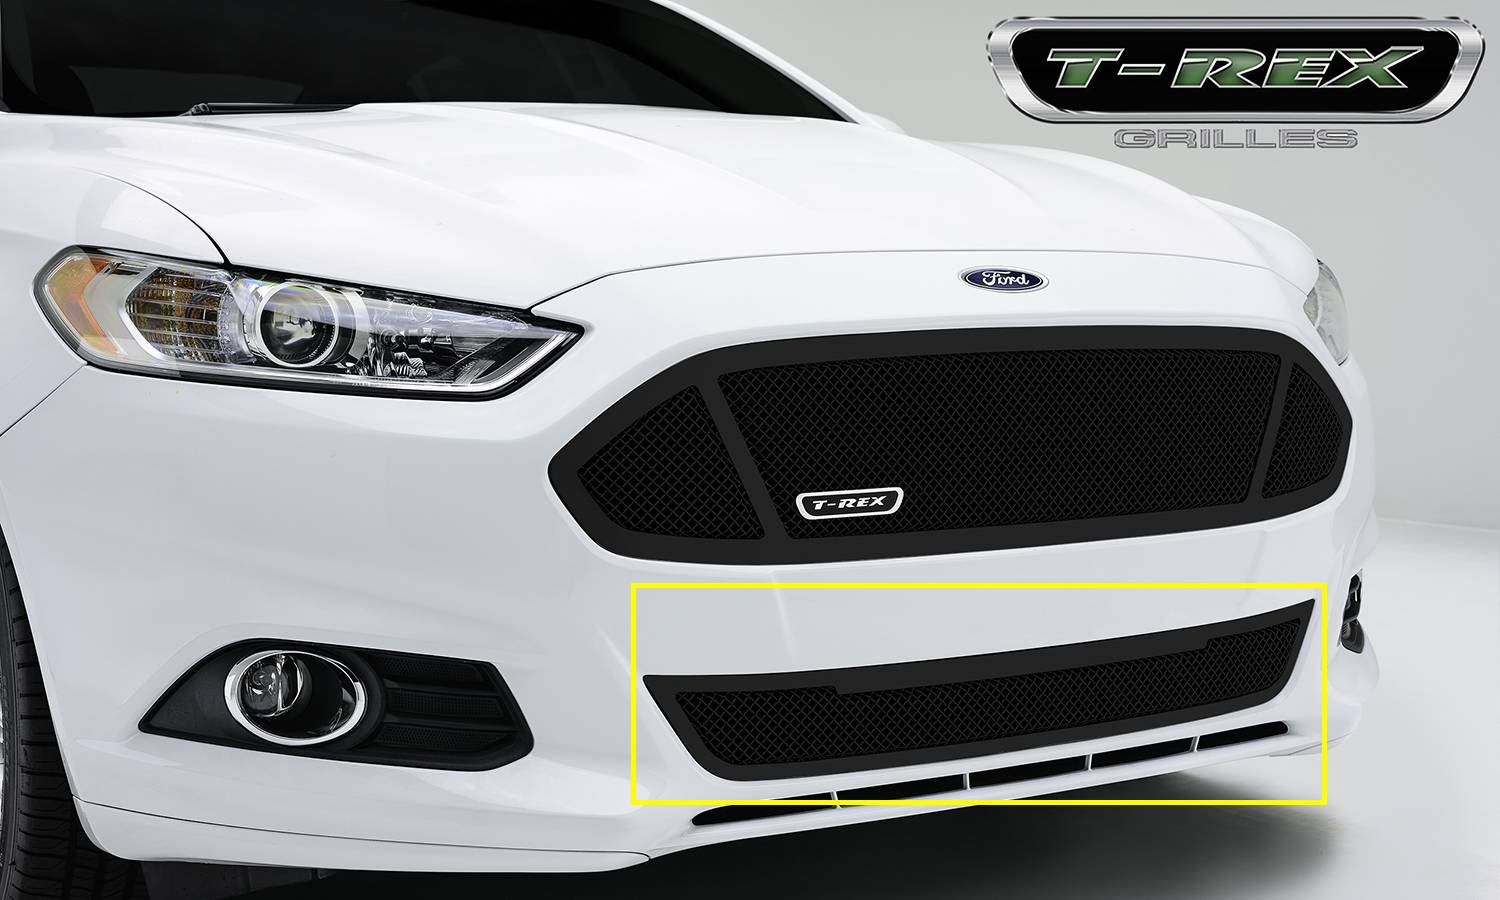 Ford Fusion Upper Class, Formed Mesh Grille, Bumper, Replacement, 1 Pc, Black Powdercoated Mild Steel - Pt # 52531